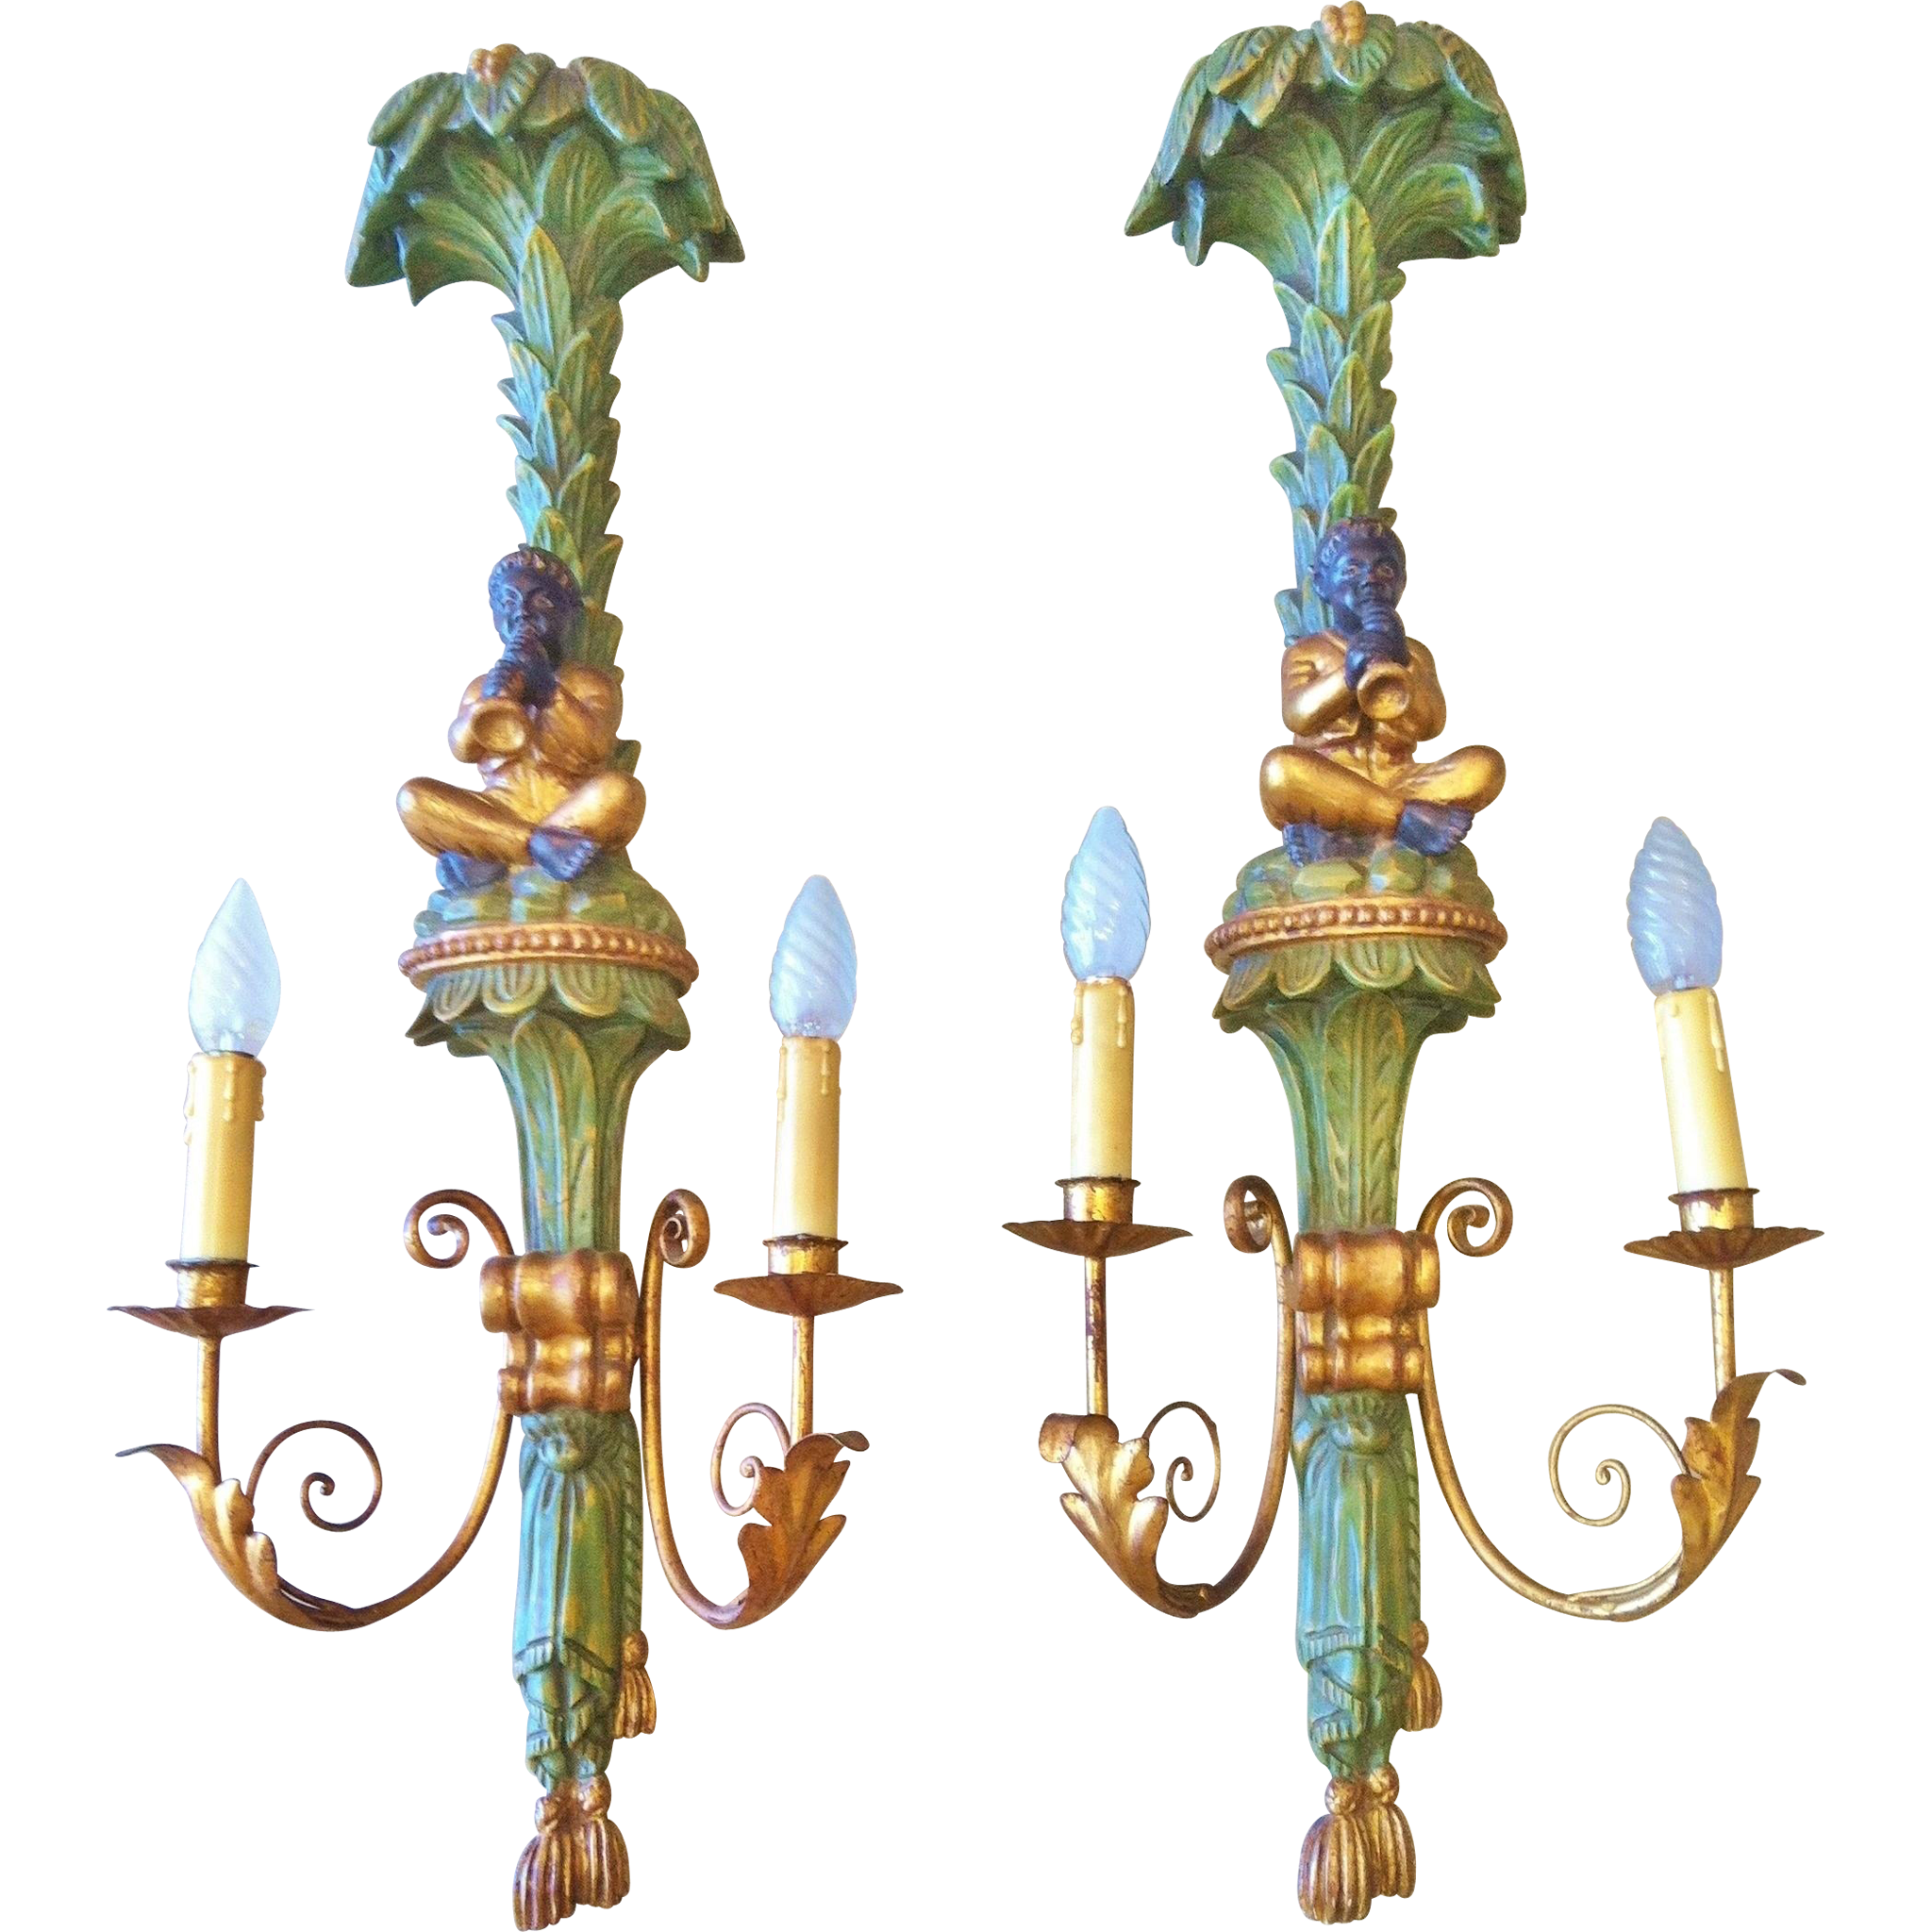 Blackamoor Wall Sconces : Blackamoor Wall Sconces, Pair in Carved Wood, Vintage 1920-40 s from collectorsdelights on Ruby Lane